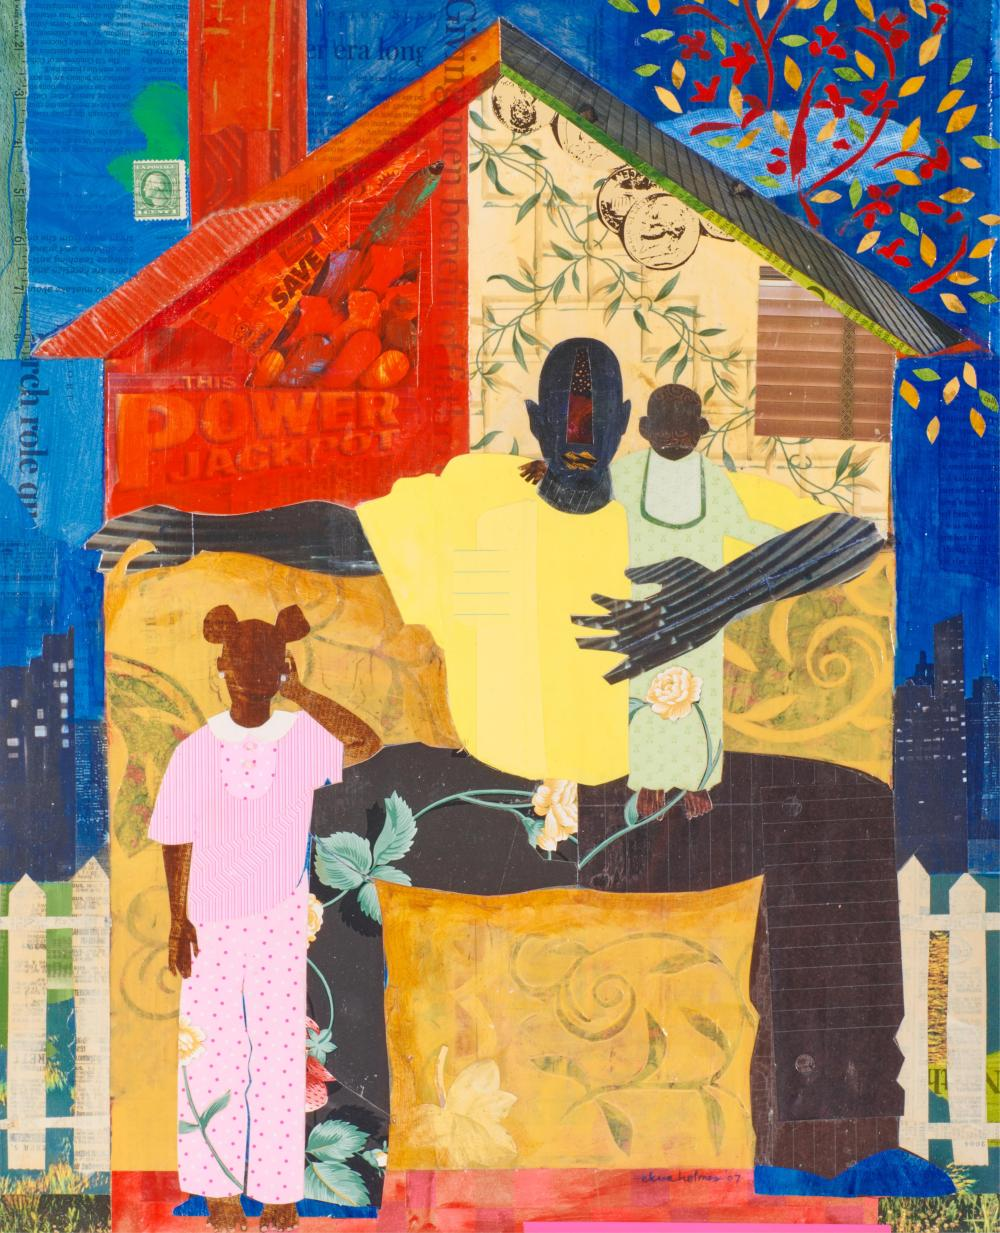 EKUA HOLMES, (American, b. 1955), Progeny, 2007, collage and mixed media on board, sight: 20 1/4 x 16 1/2 in., frame: 27 1/4 x 23 1/2 in.